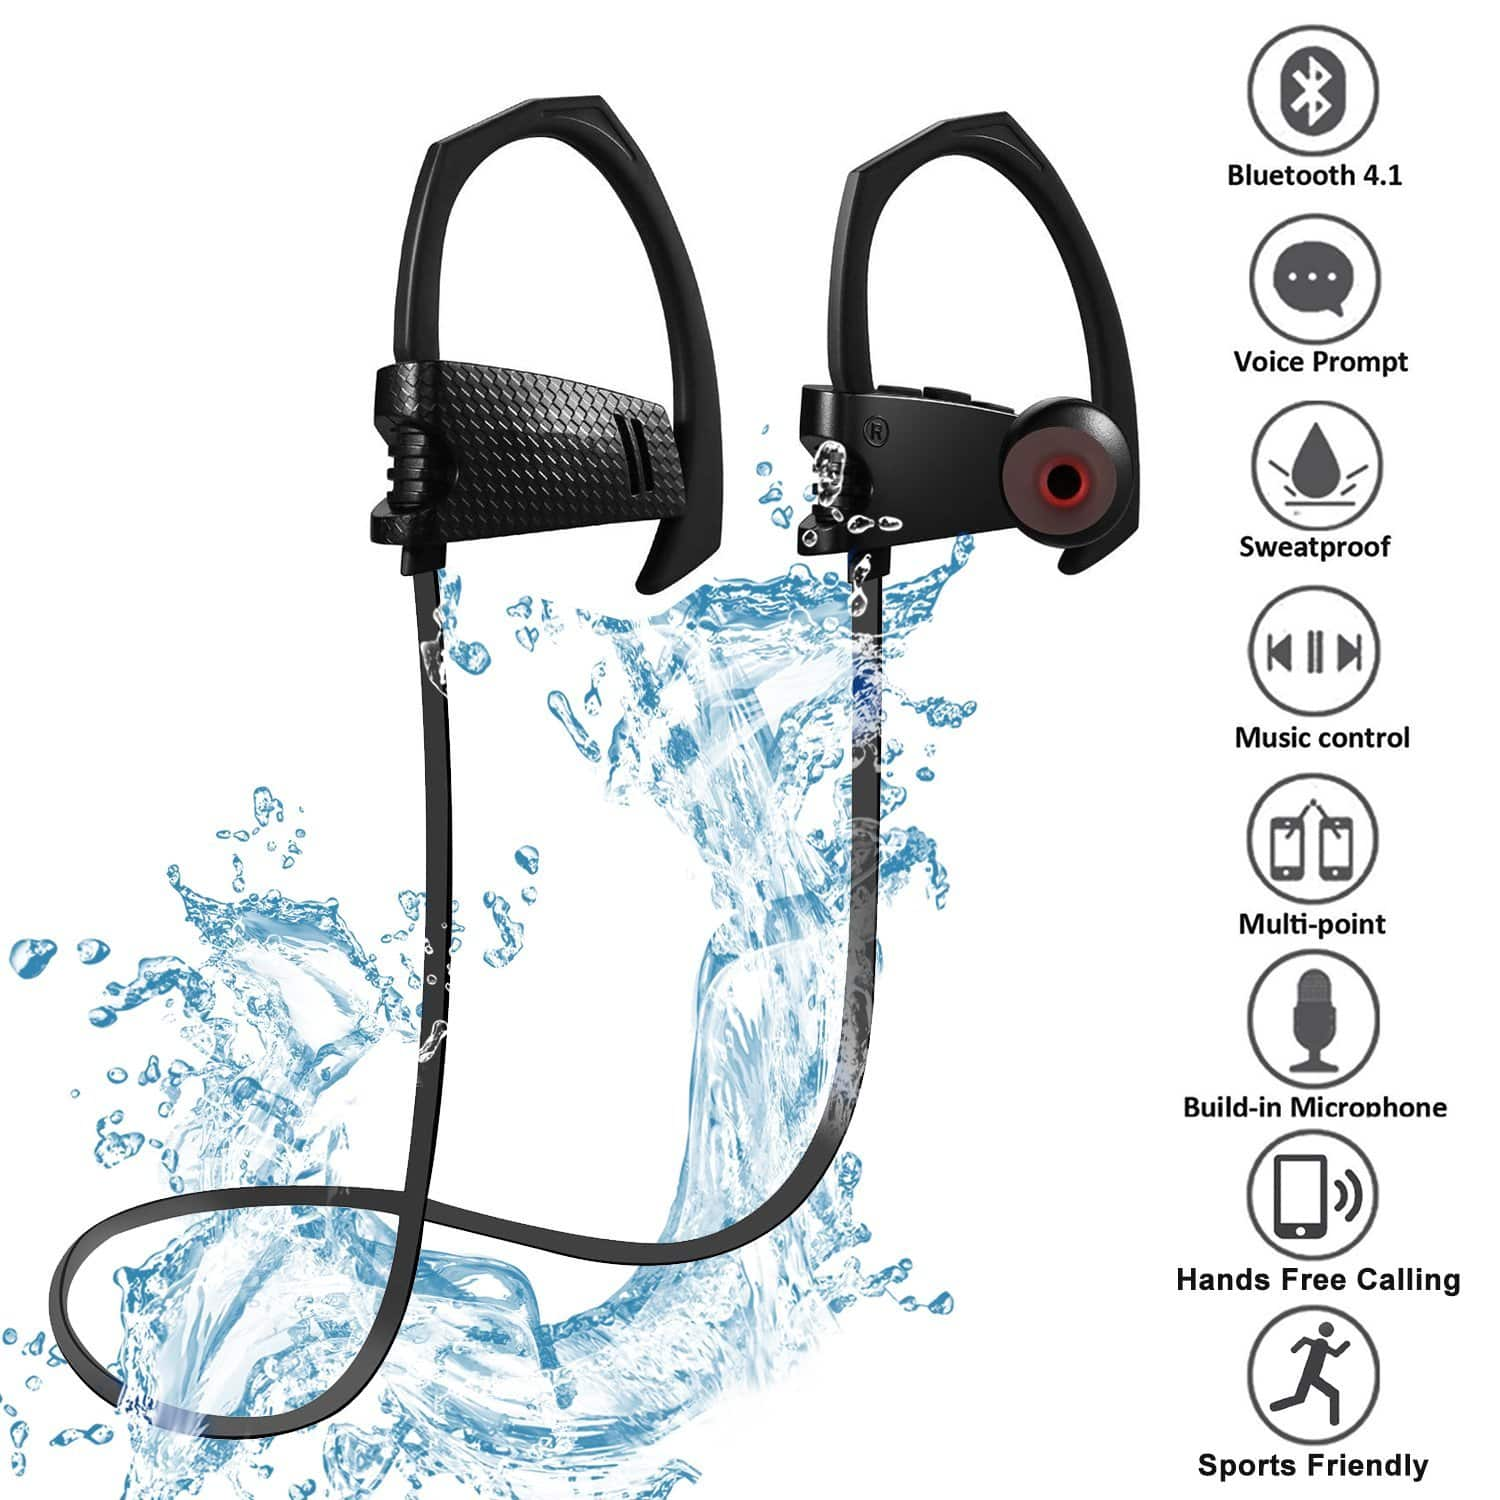 Wireless Bluetooth 4.1 Noise Cancelling Headphones Bulit-in Mic $14.99 AC+ Free Shipping @Amazon